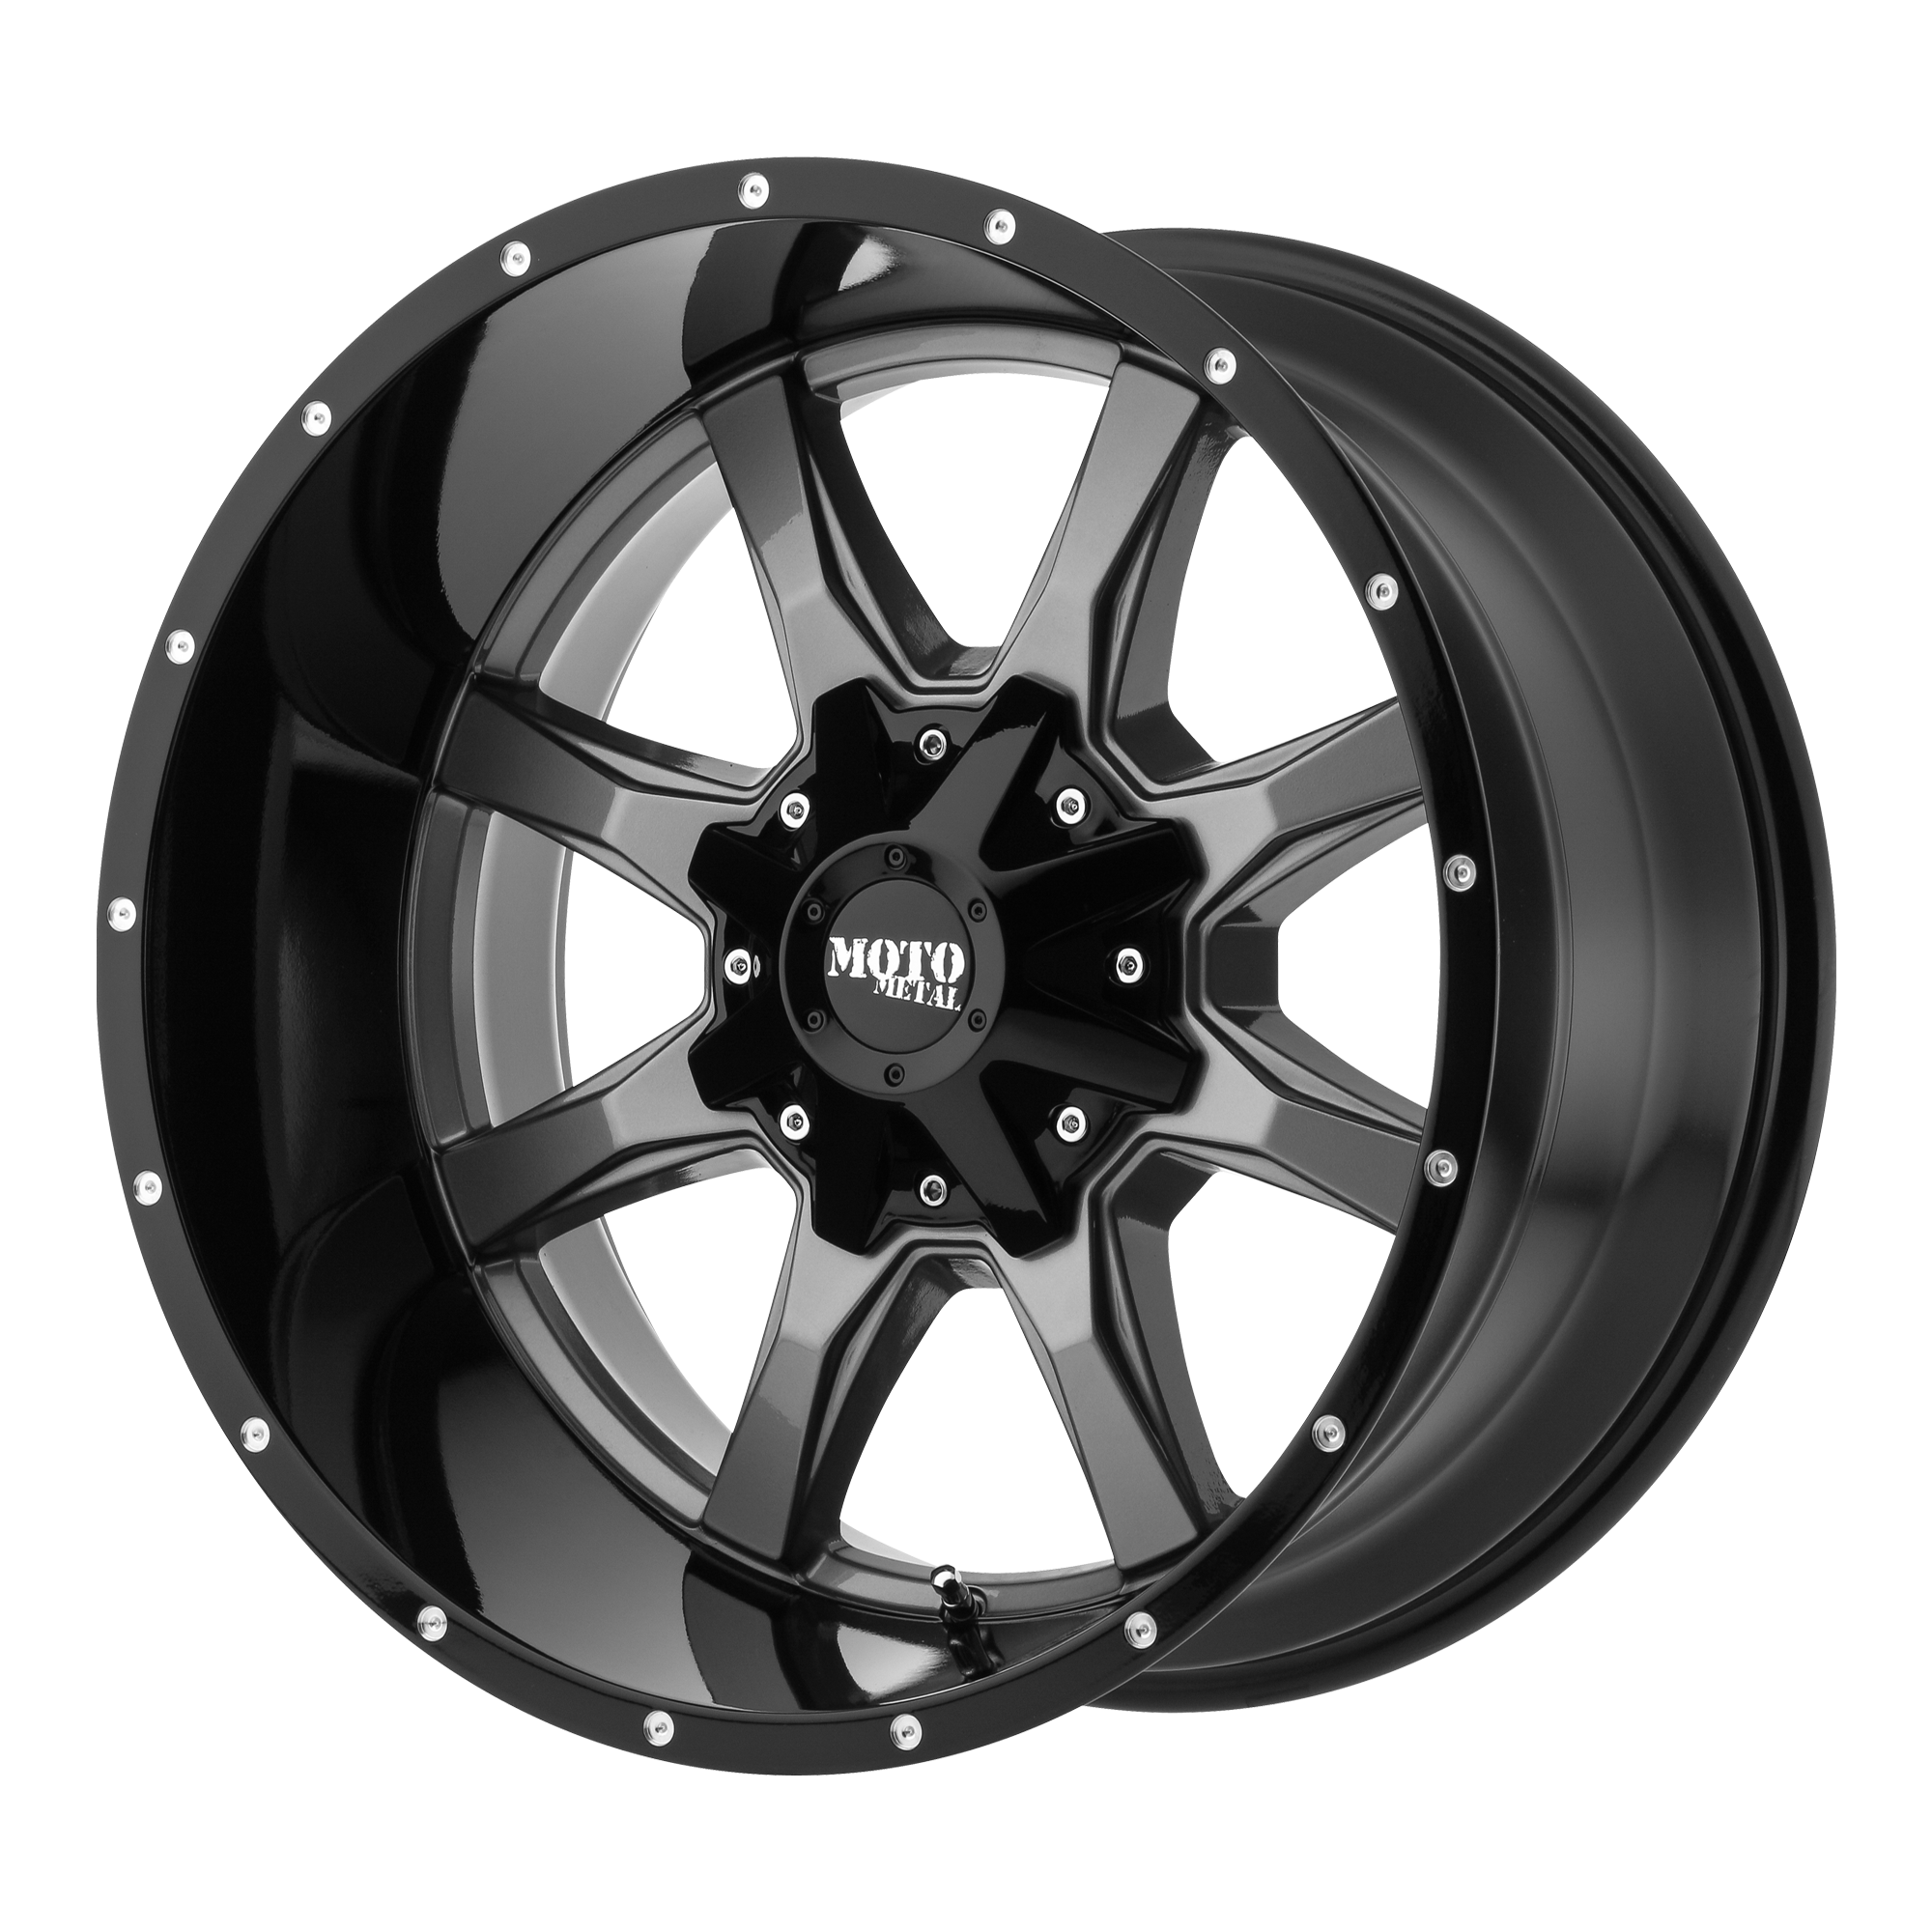 MOTO METAL MO970 hliníkové disky 10x18 5x150 ET-24 Gloss Gray Center Gloss Black Lip